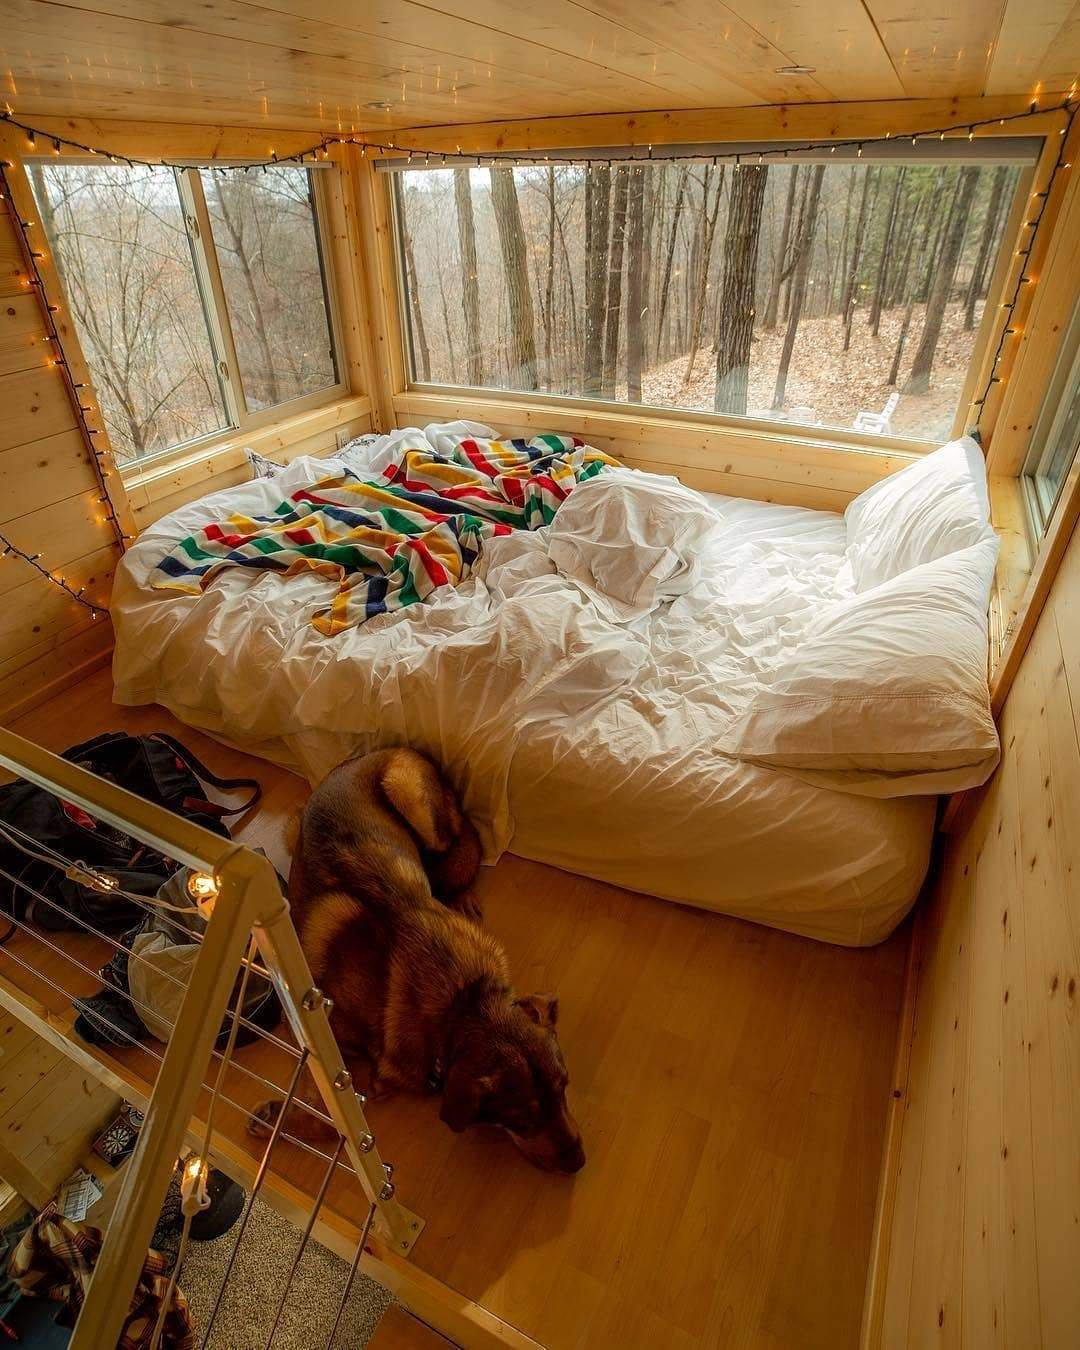 Cozy loft cabin bedroom with a dog, on a rainy day